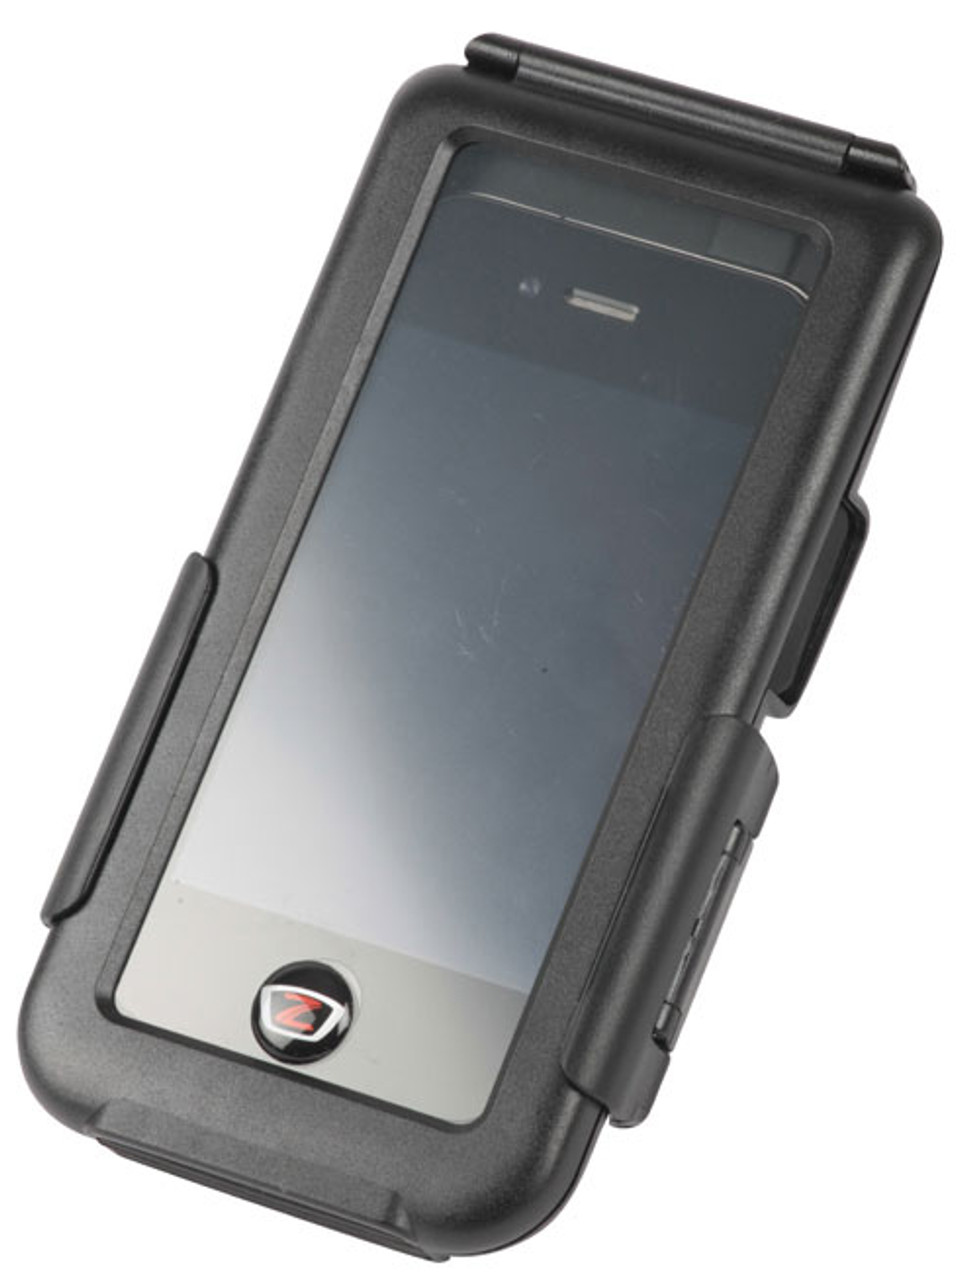 Zefal Z-Console Waterproof Smartphone Holder. Suitable for iPhone 4, iPhone 4S &